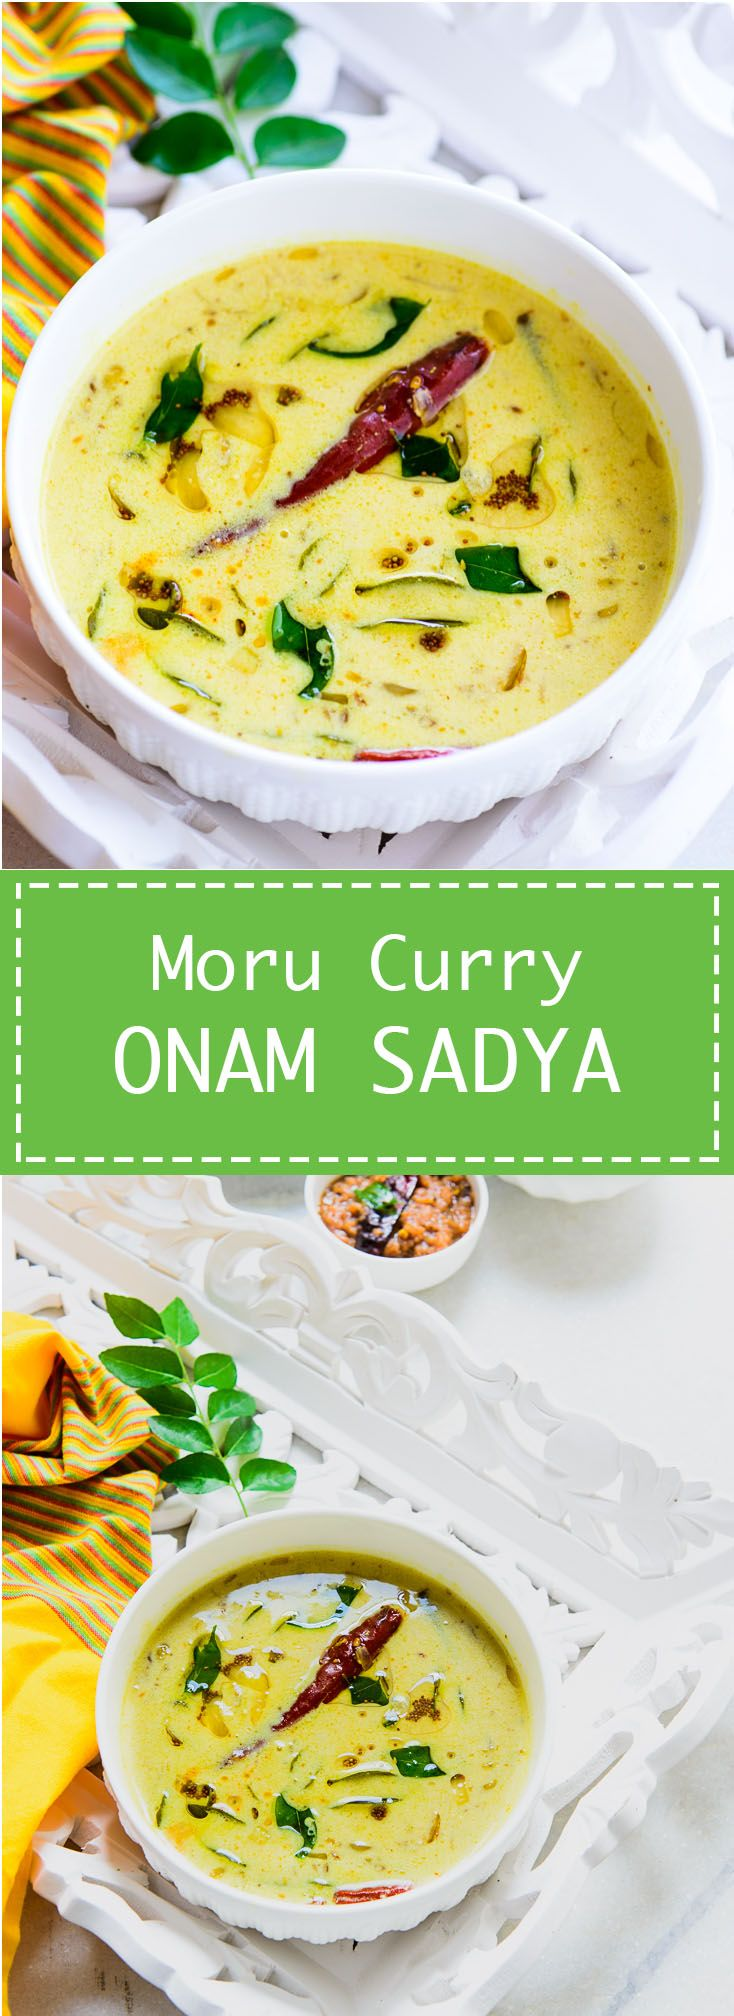 Moru Curry Kerala style seasoned Buttermilk curry for Onam Sadya. This quick and easy to make Kerala recipe is healthy and delicious as well. Food Photography and Styling by Neha Mathur.